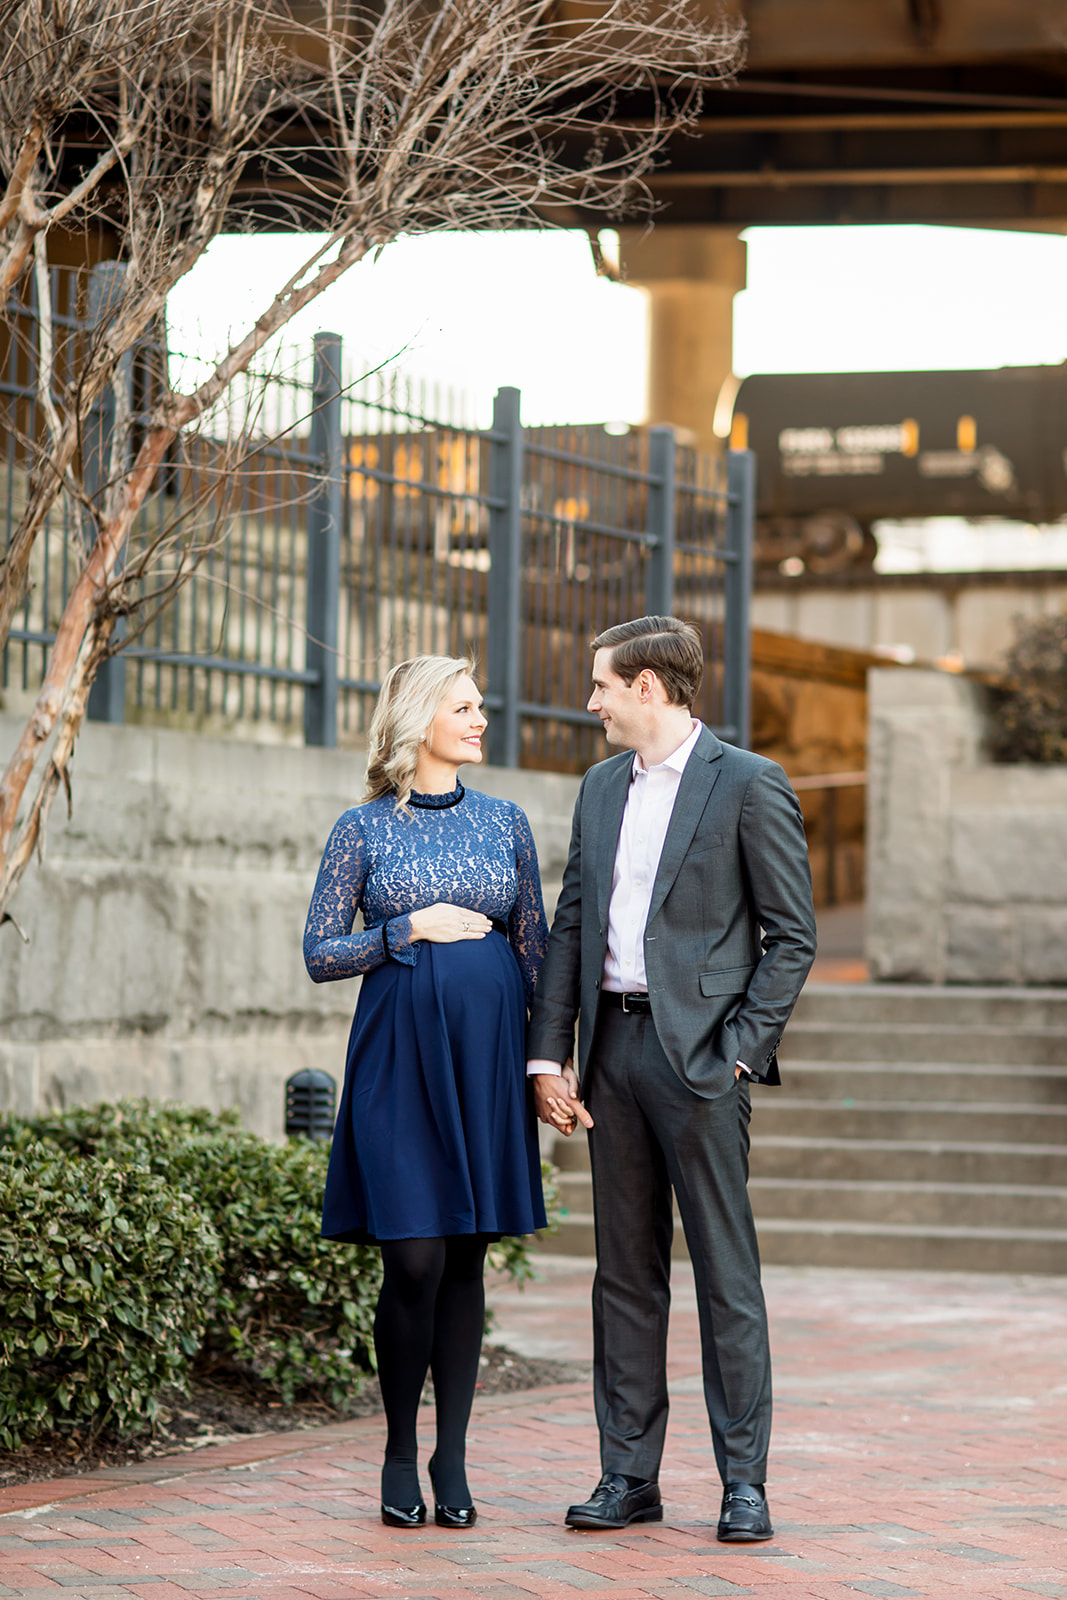 Ashley  Colins Maternity Photos at Main Street Station - Image Property of www.j-dphoto.com